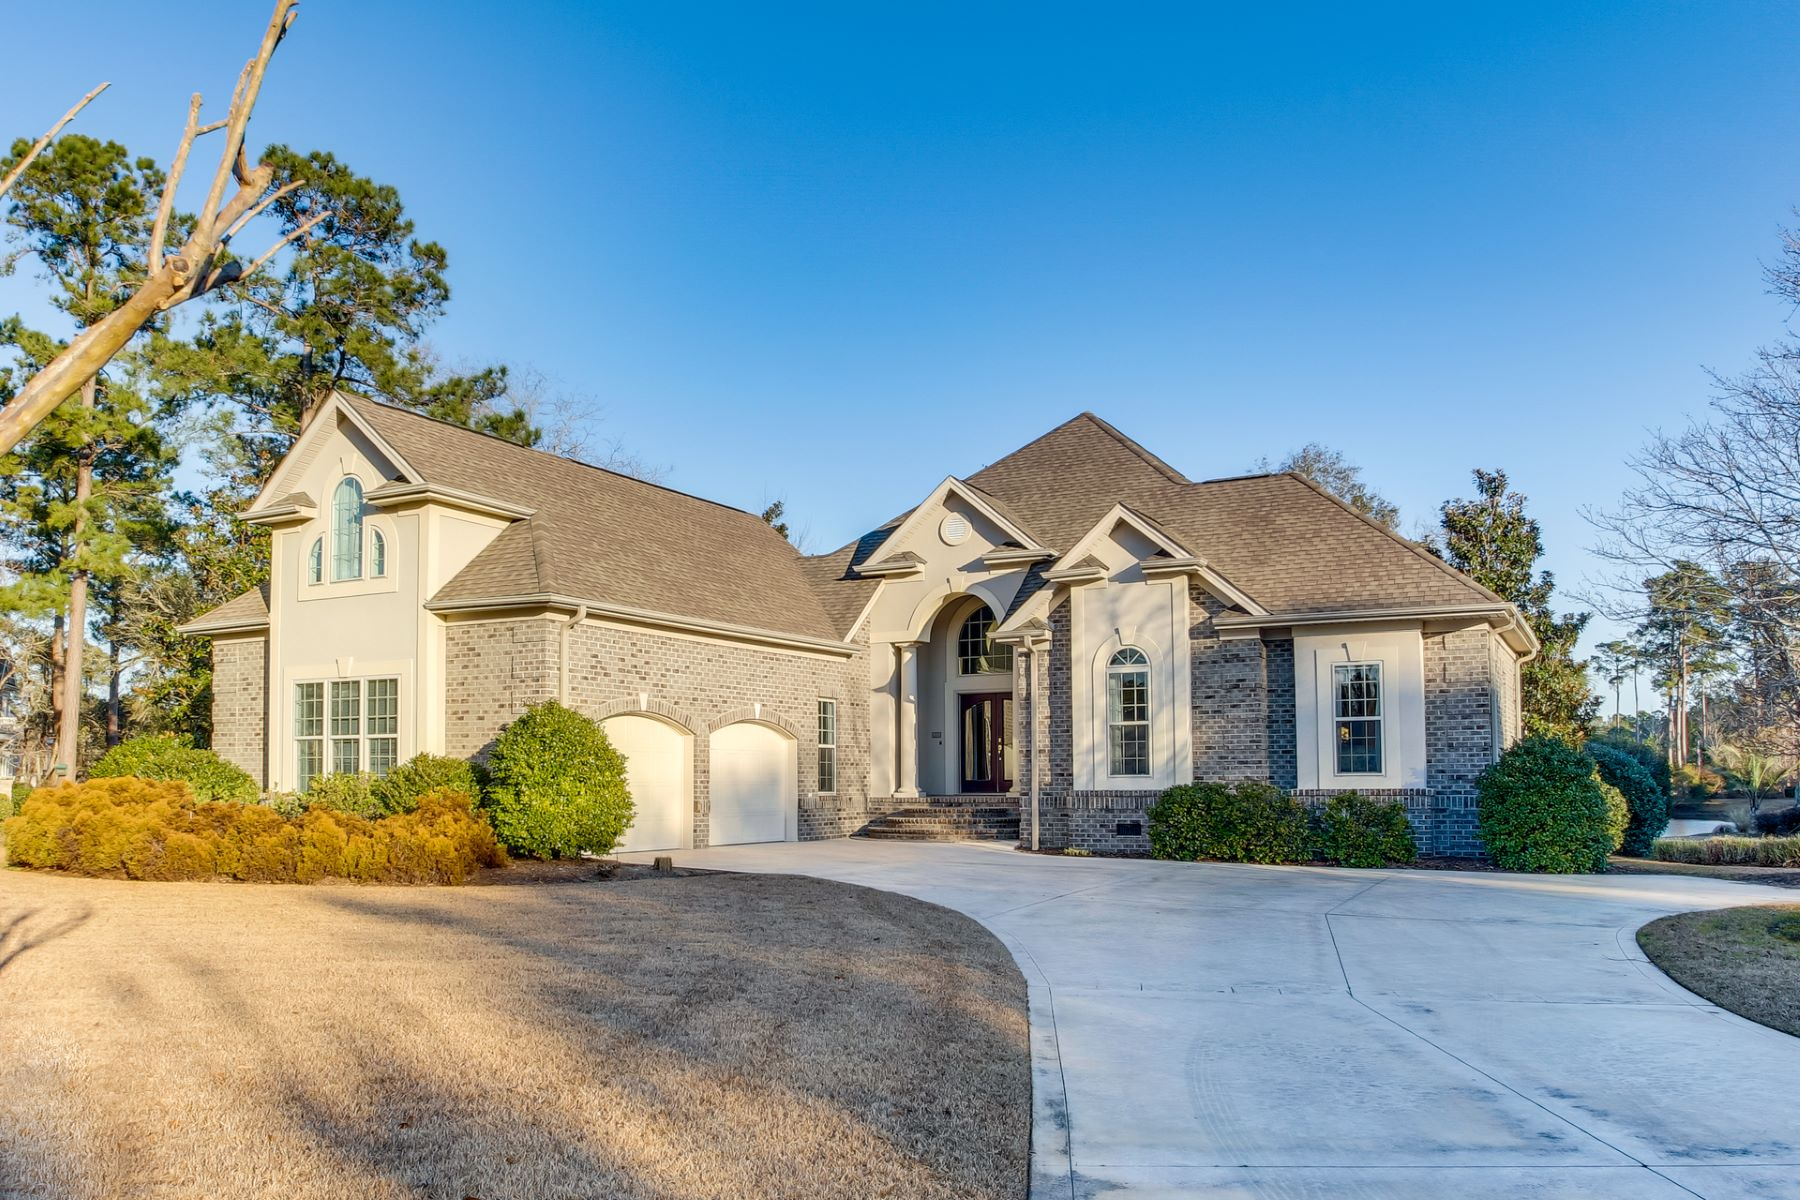 Single Family Homes for Active at Rare Custom Built Home with Waterviews 569 Gladstone Circle SW Ocean Isle Beach, North Carolina 28469 United States